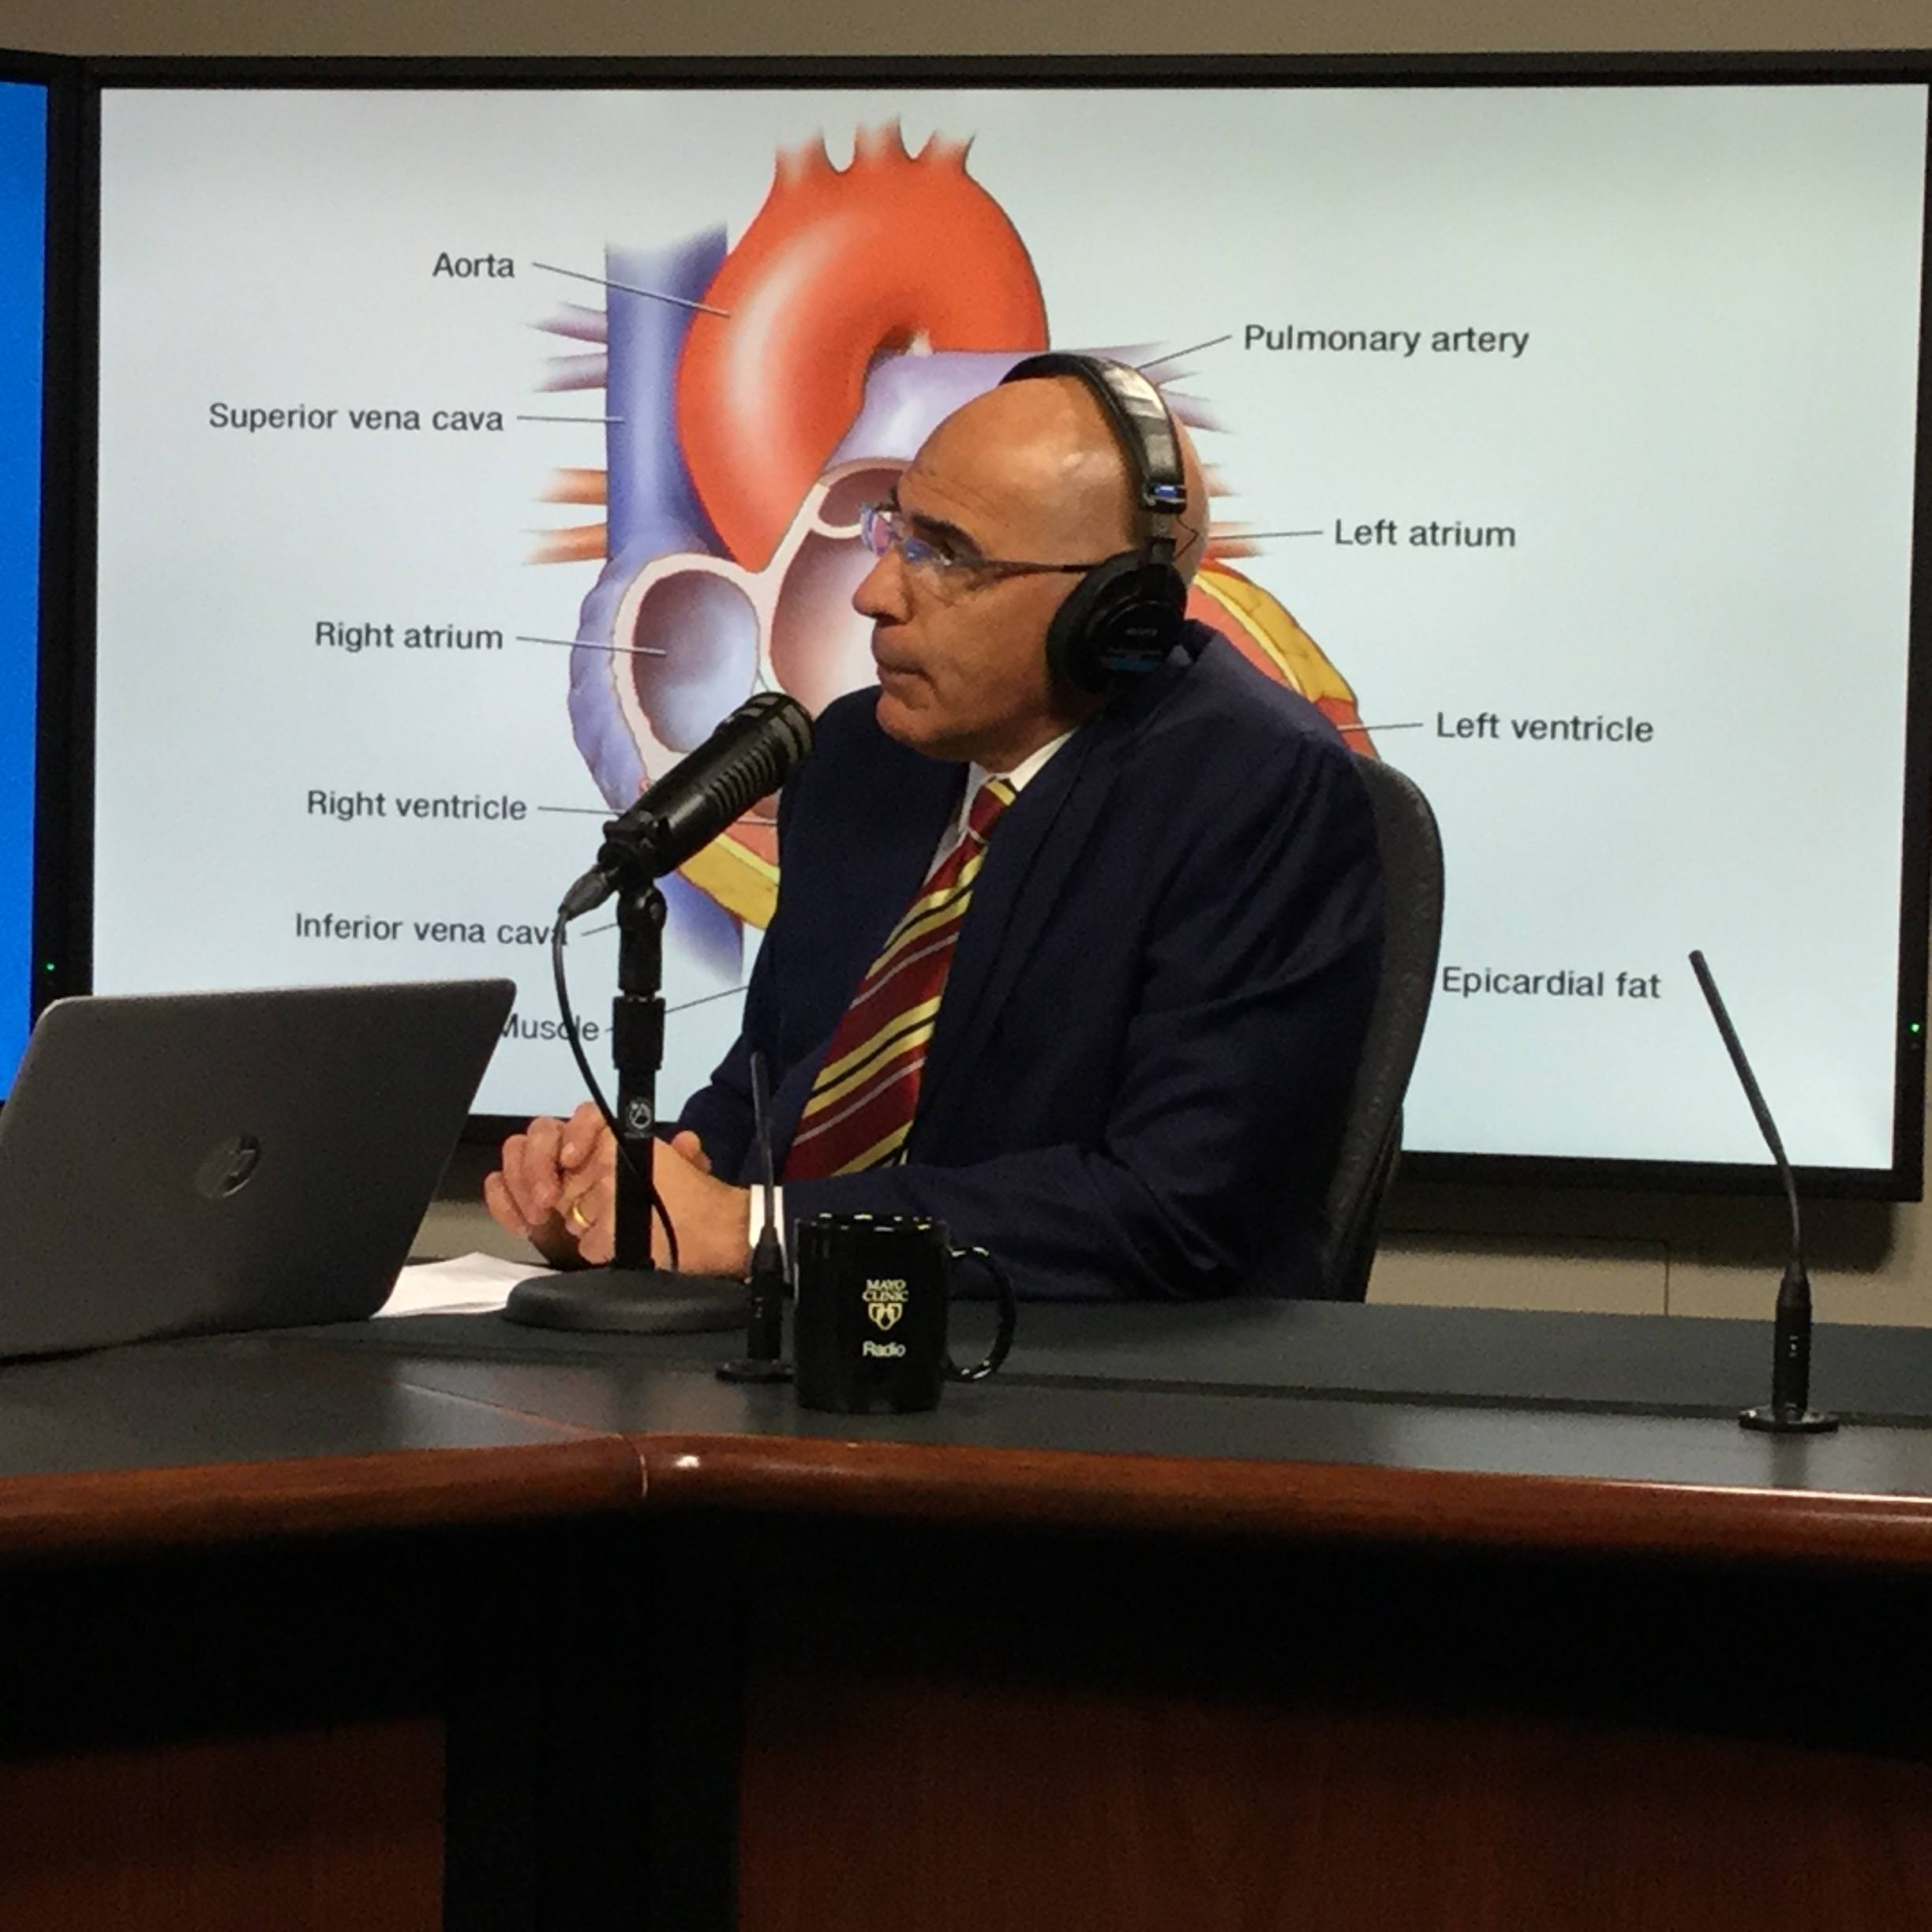 Dr. Joseph Dearani being interviewed on Mayo Clinic Radio